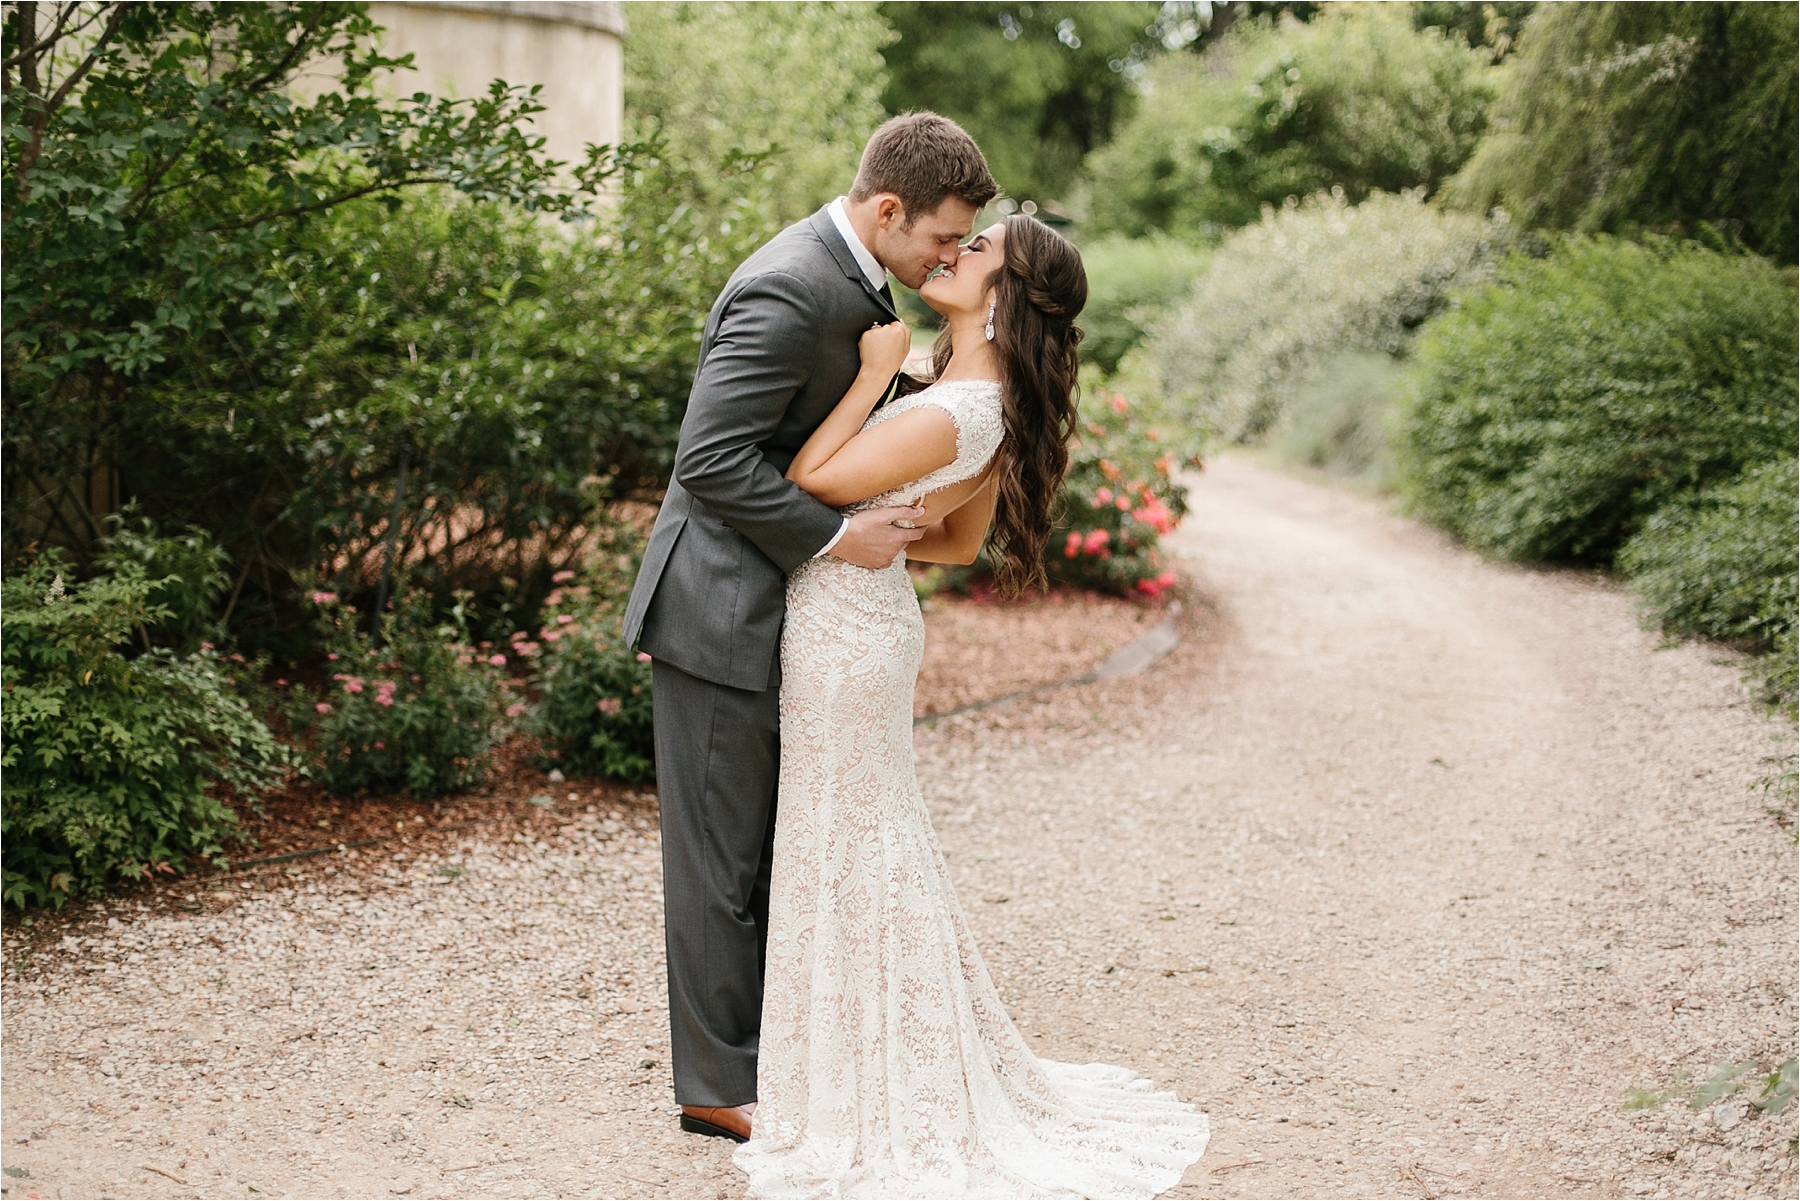 Devyn + Caden __ a Dallas Arboretum Garden Style Wedding by North Texas Wedding Photographer Rachel Meagan Photography __ 033